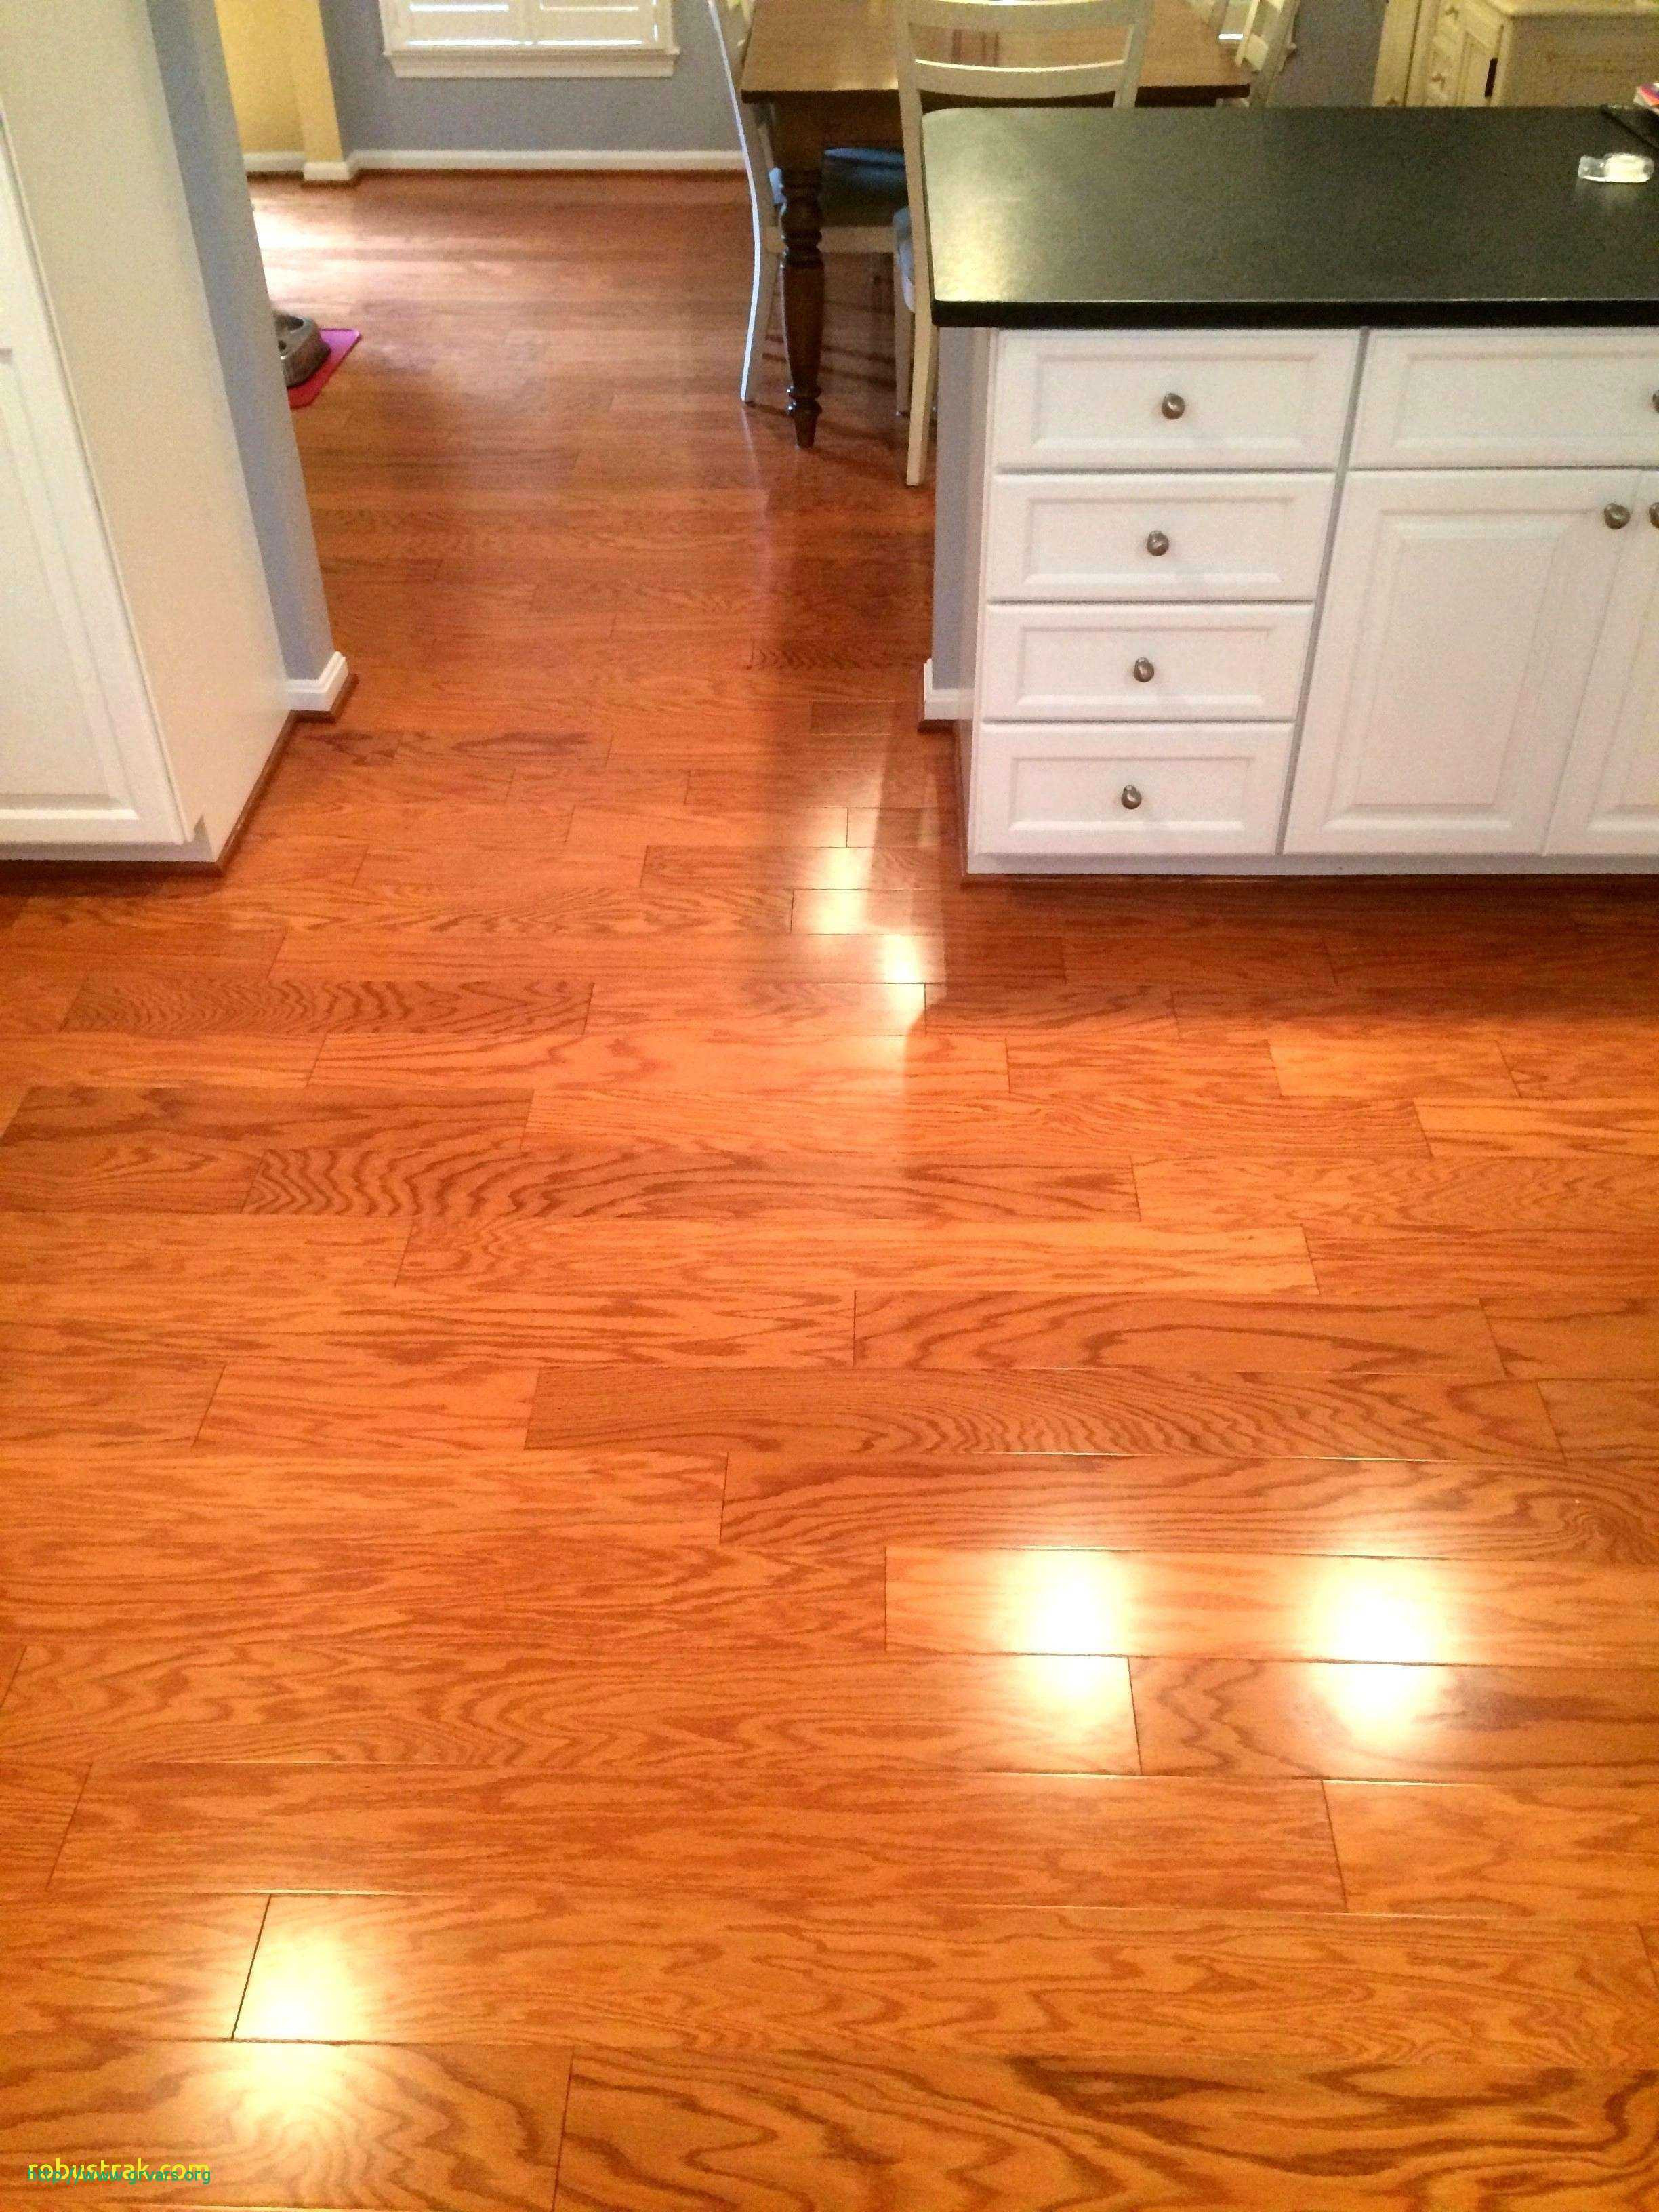 hardwood flooring prices toronto of 23 frais how much is a hardwood floor ideas blog pertaining to hardwood floors in the kitchen fresh where to buy hardwood flooring inspirational 0d grace place barnegat